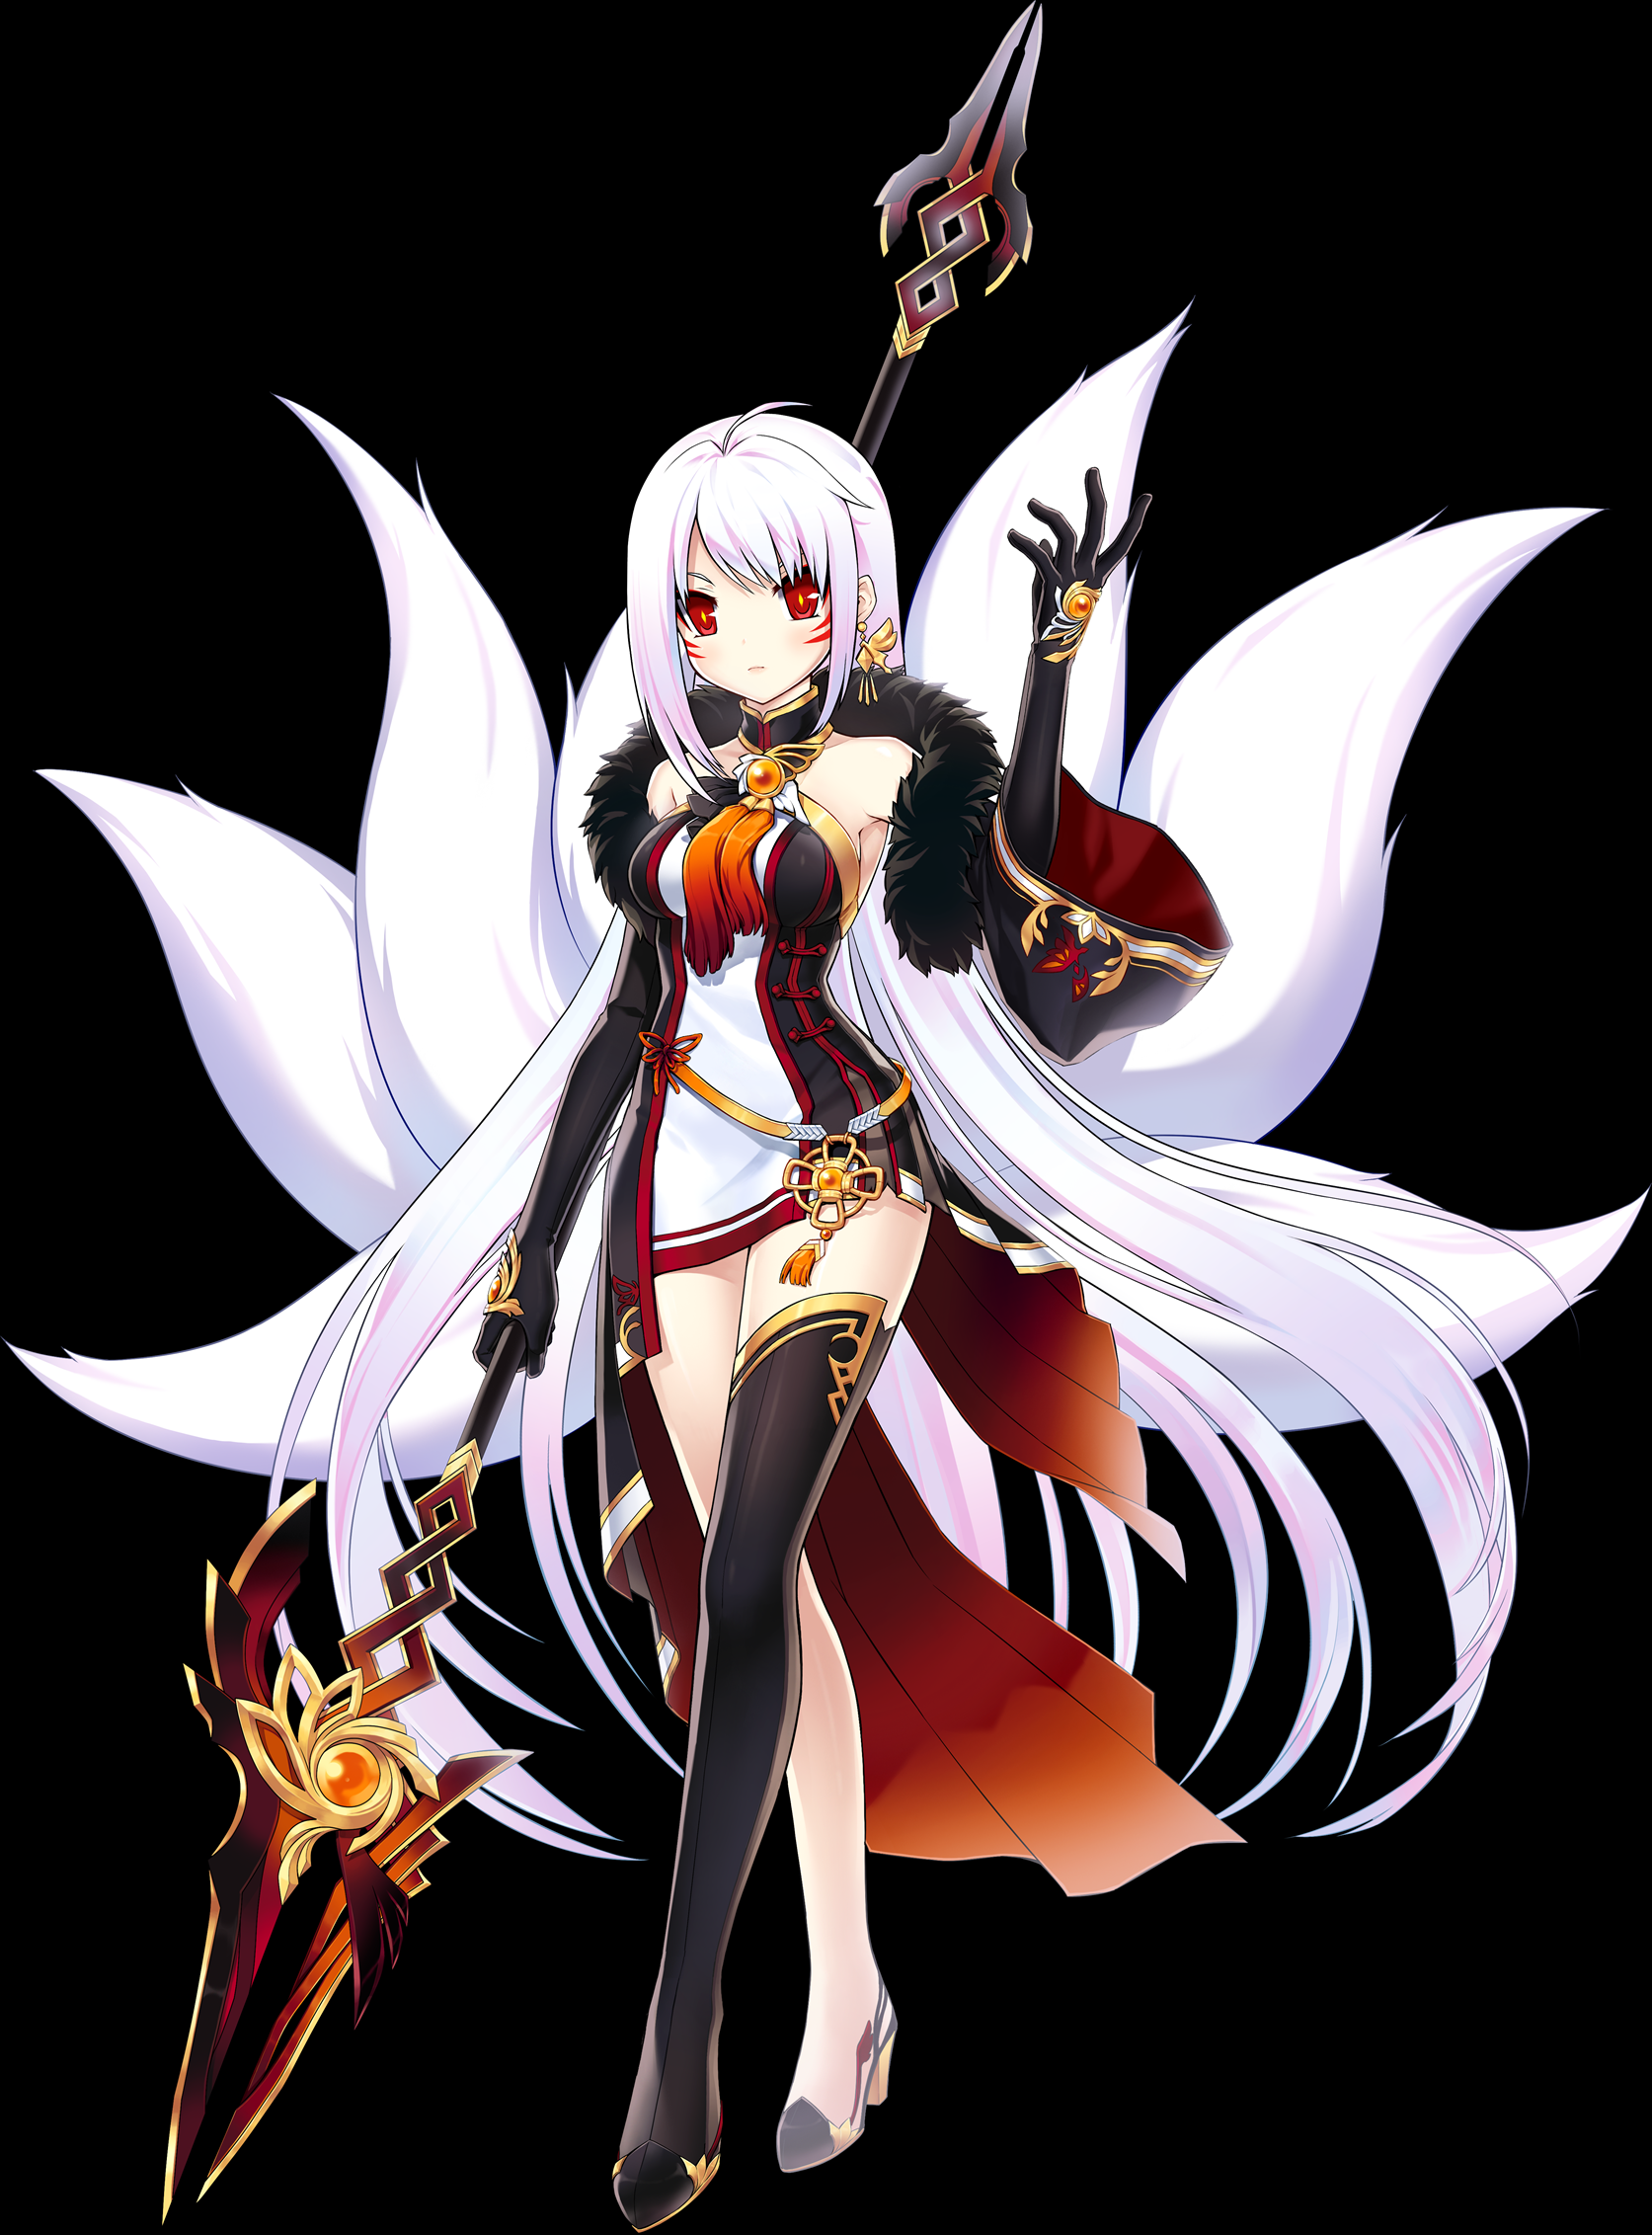 Image by Hour Glass on Ara Haan Elsword, Anime, Character